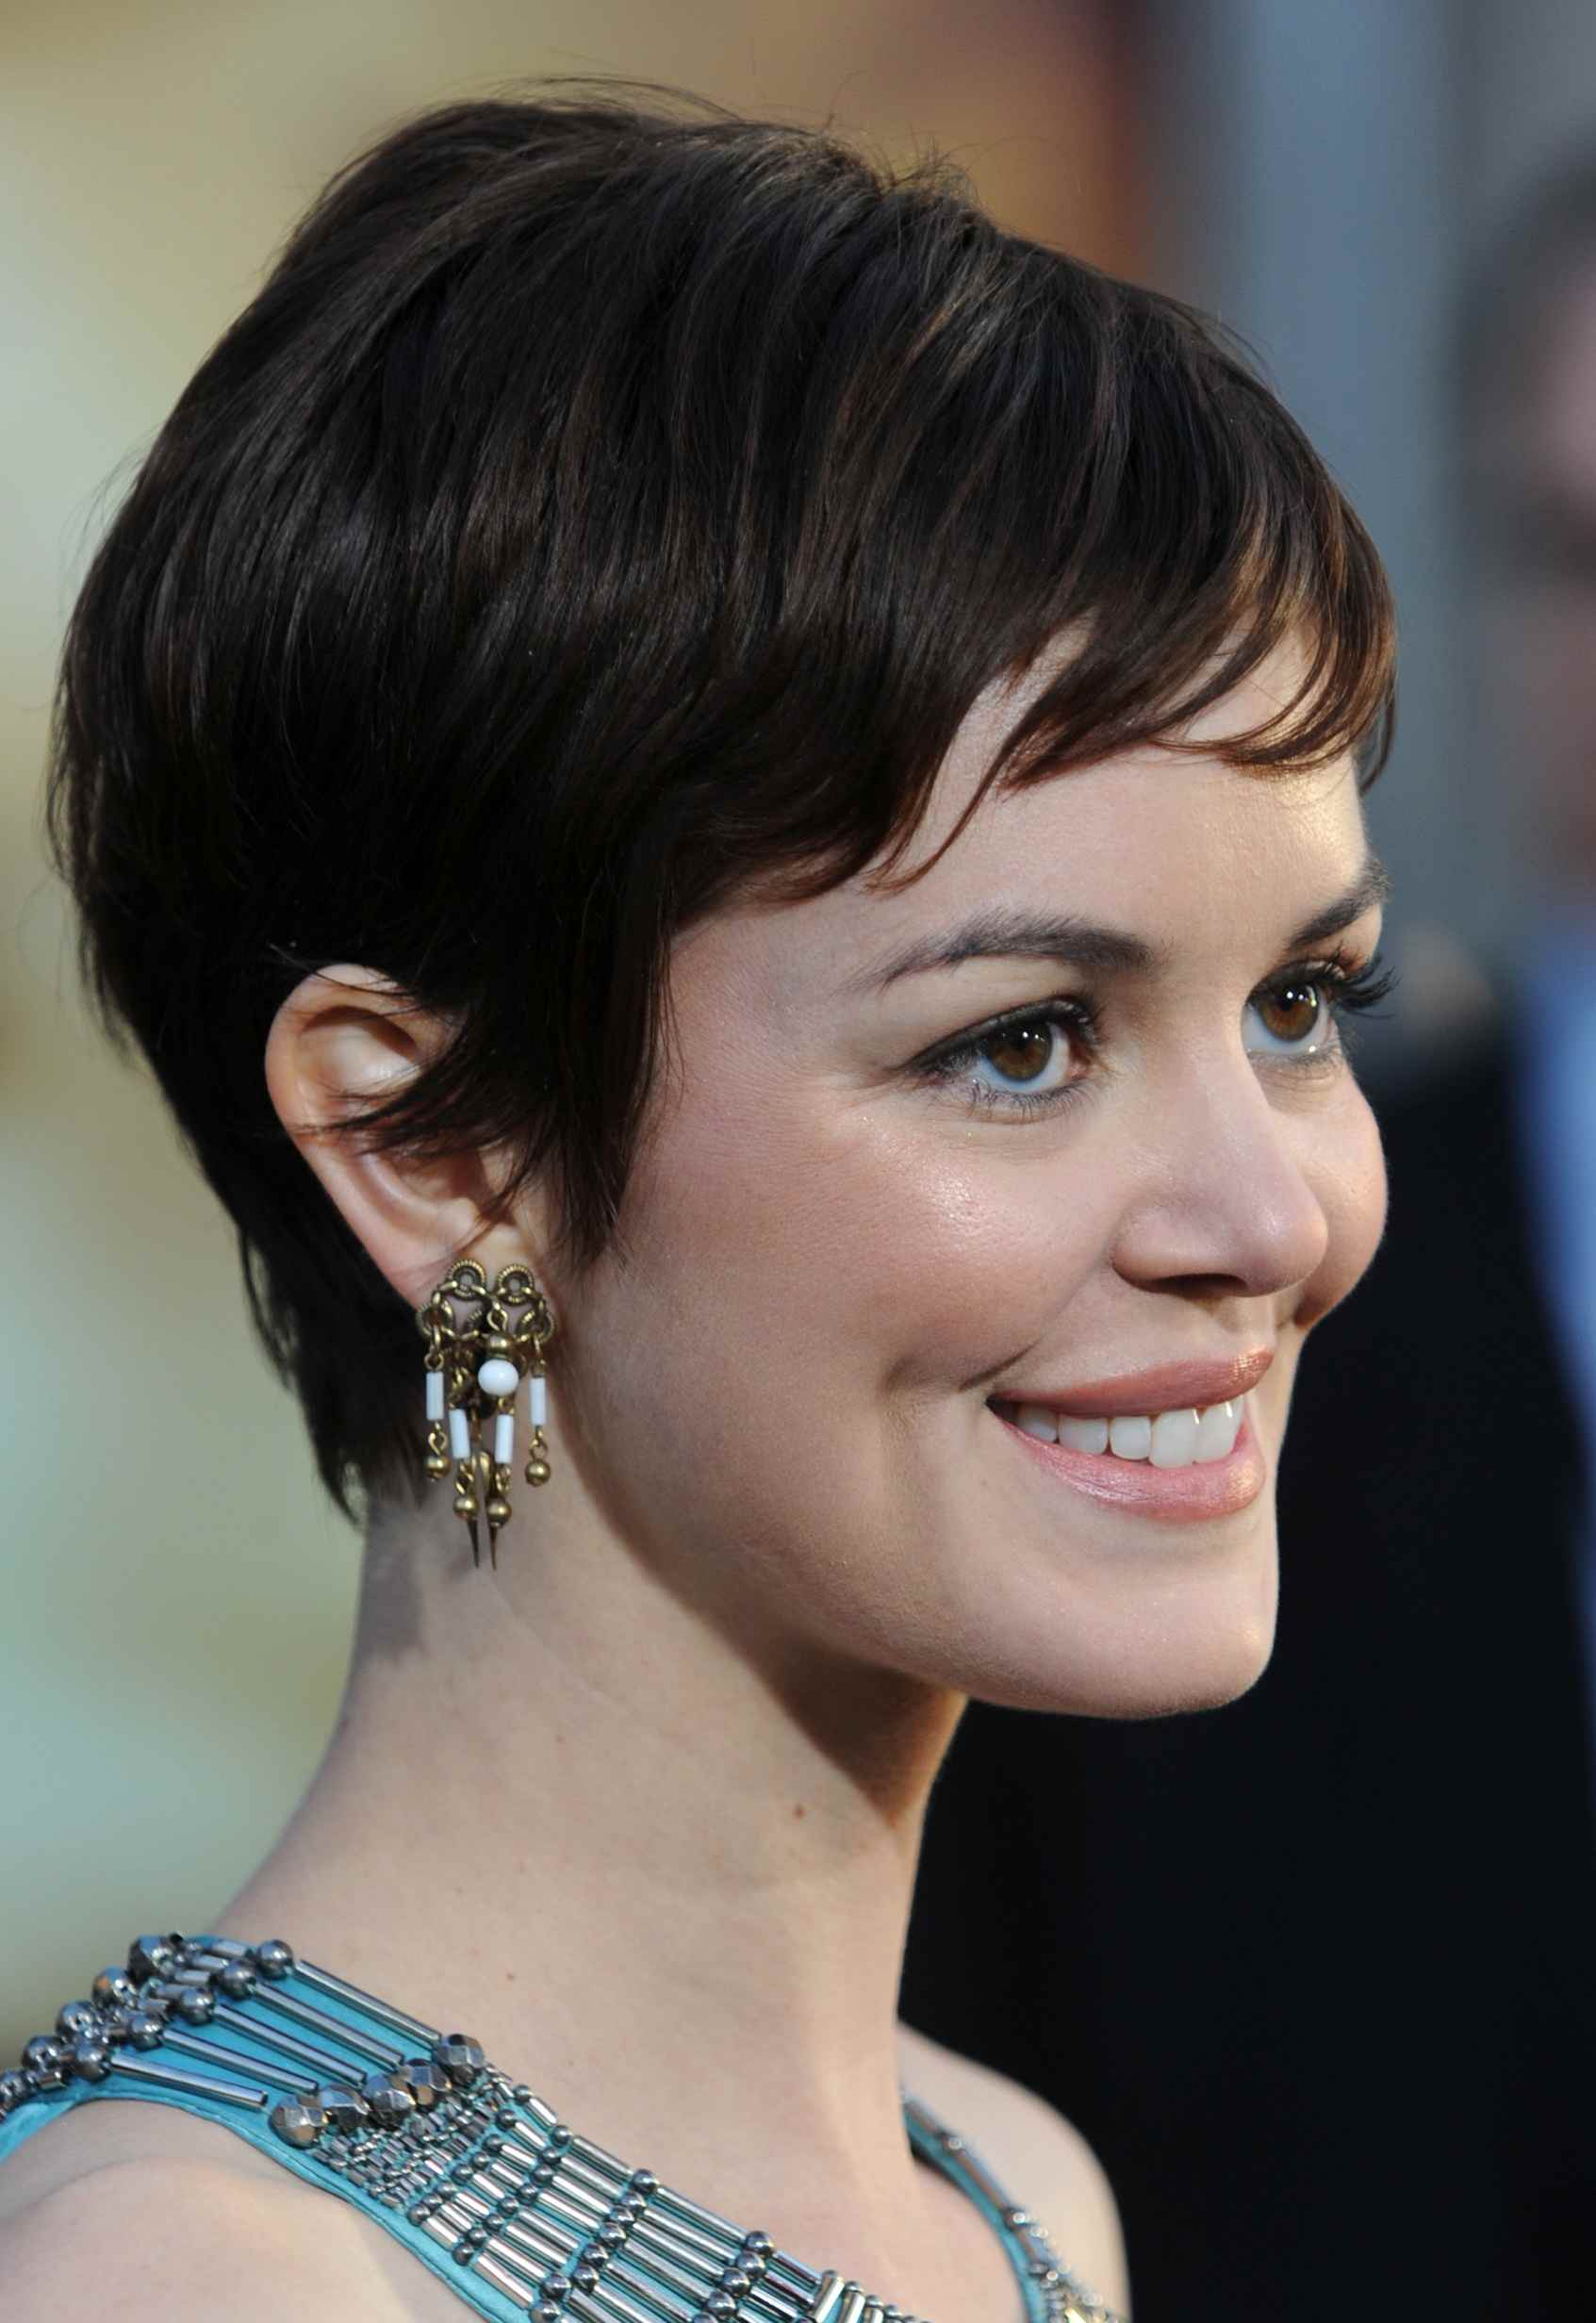 Pixie Hair Styles We Love Right Now